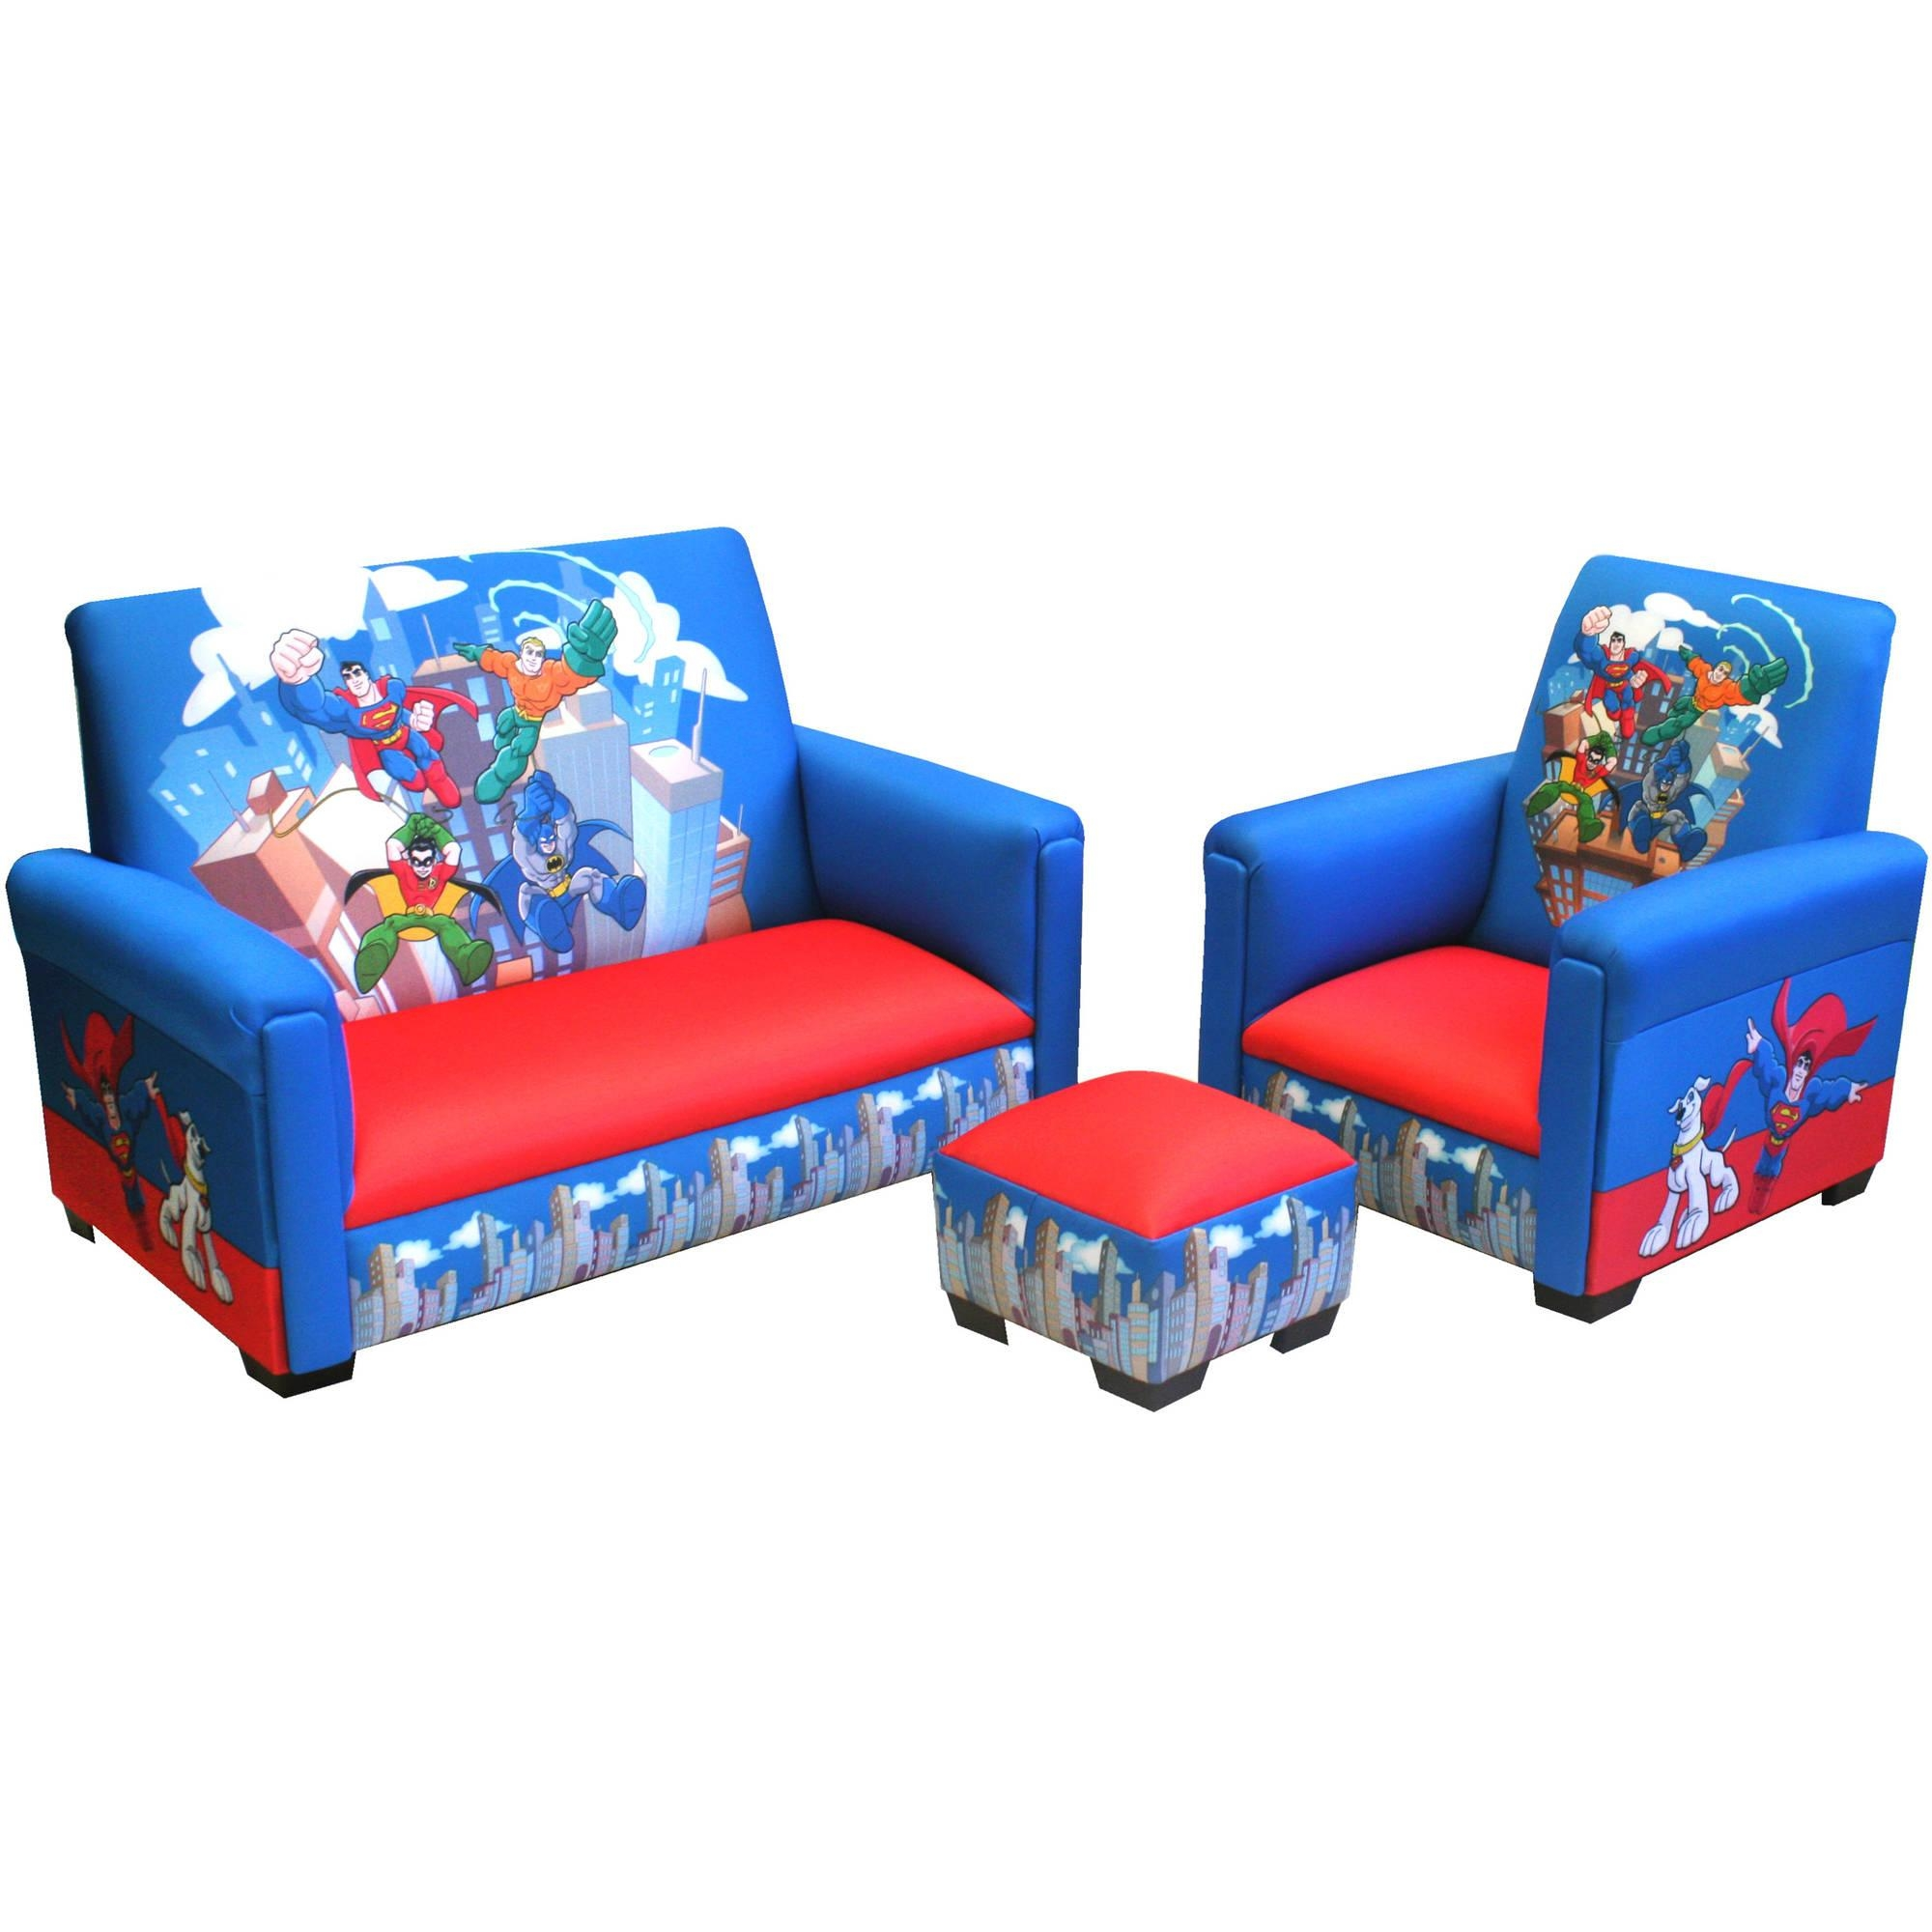 Sofas Center : Kids Sofa Set Popular Buy Cheap Lots From China Hot Throughout Cheap Kids Sofas (View 9 of 20)